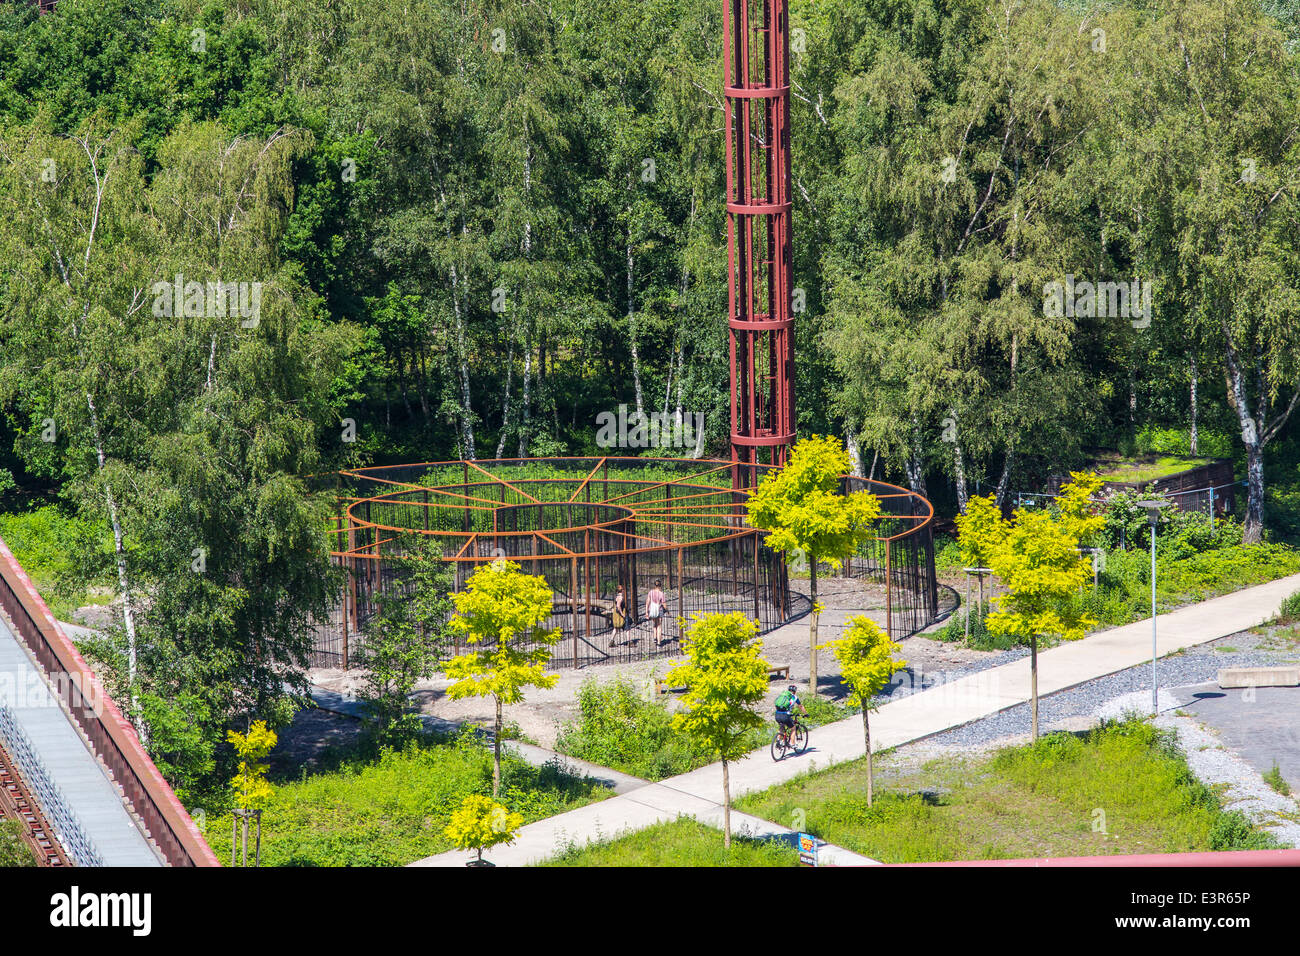 UNESCO world heritage site, Zeche Zollverein, Essen, Germany. Formerly the biggest coal mine in the world. - Stock Image